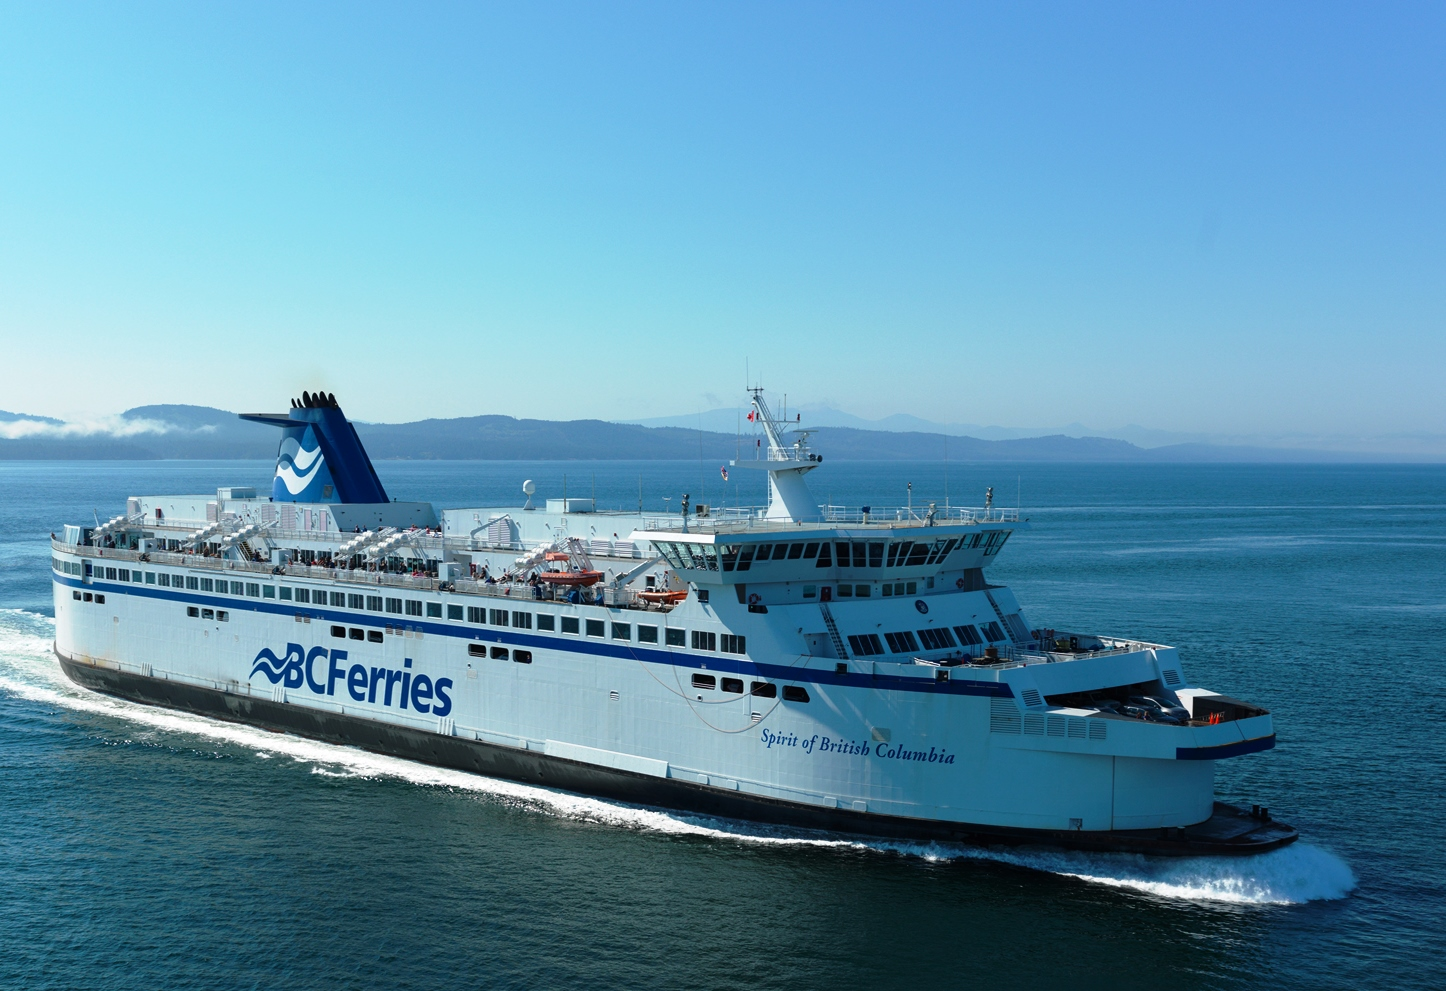 The Spirit of British Columbia, a ferry in the province's fleet. (Kent Kallberg/BC Ferries)